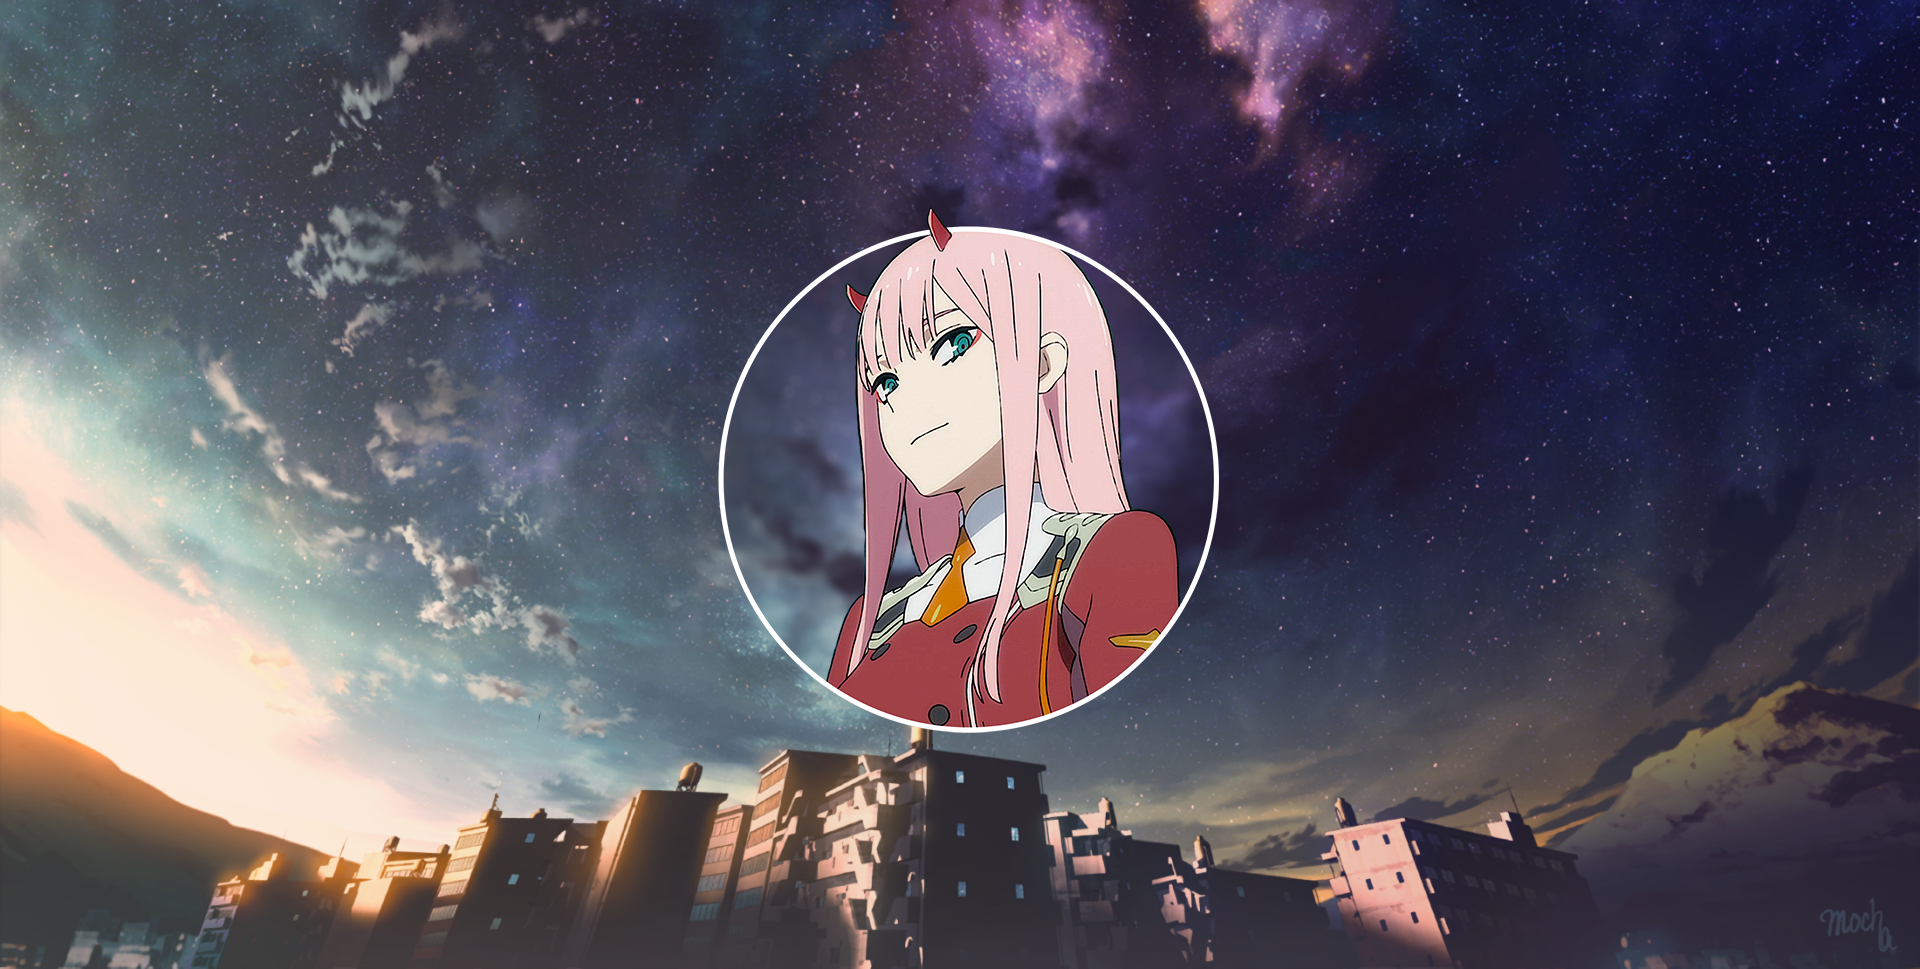 1920x969 Zero Two Wallpaper Background Image View Download Comment And Rate Wallpaper Abyss Darling In The Franxx Background Images Anime Wallpaper